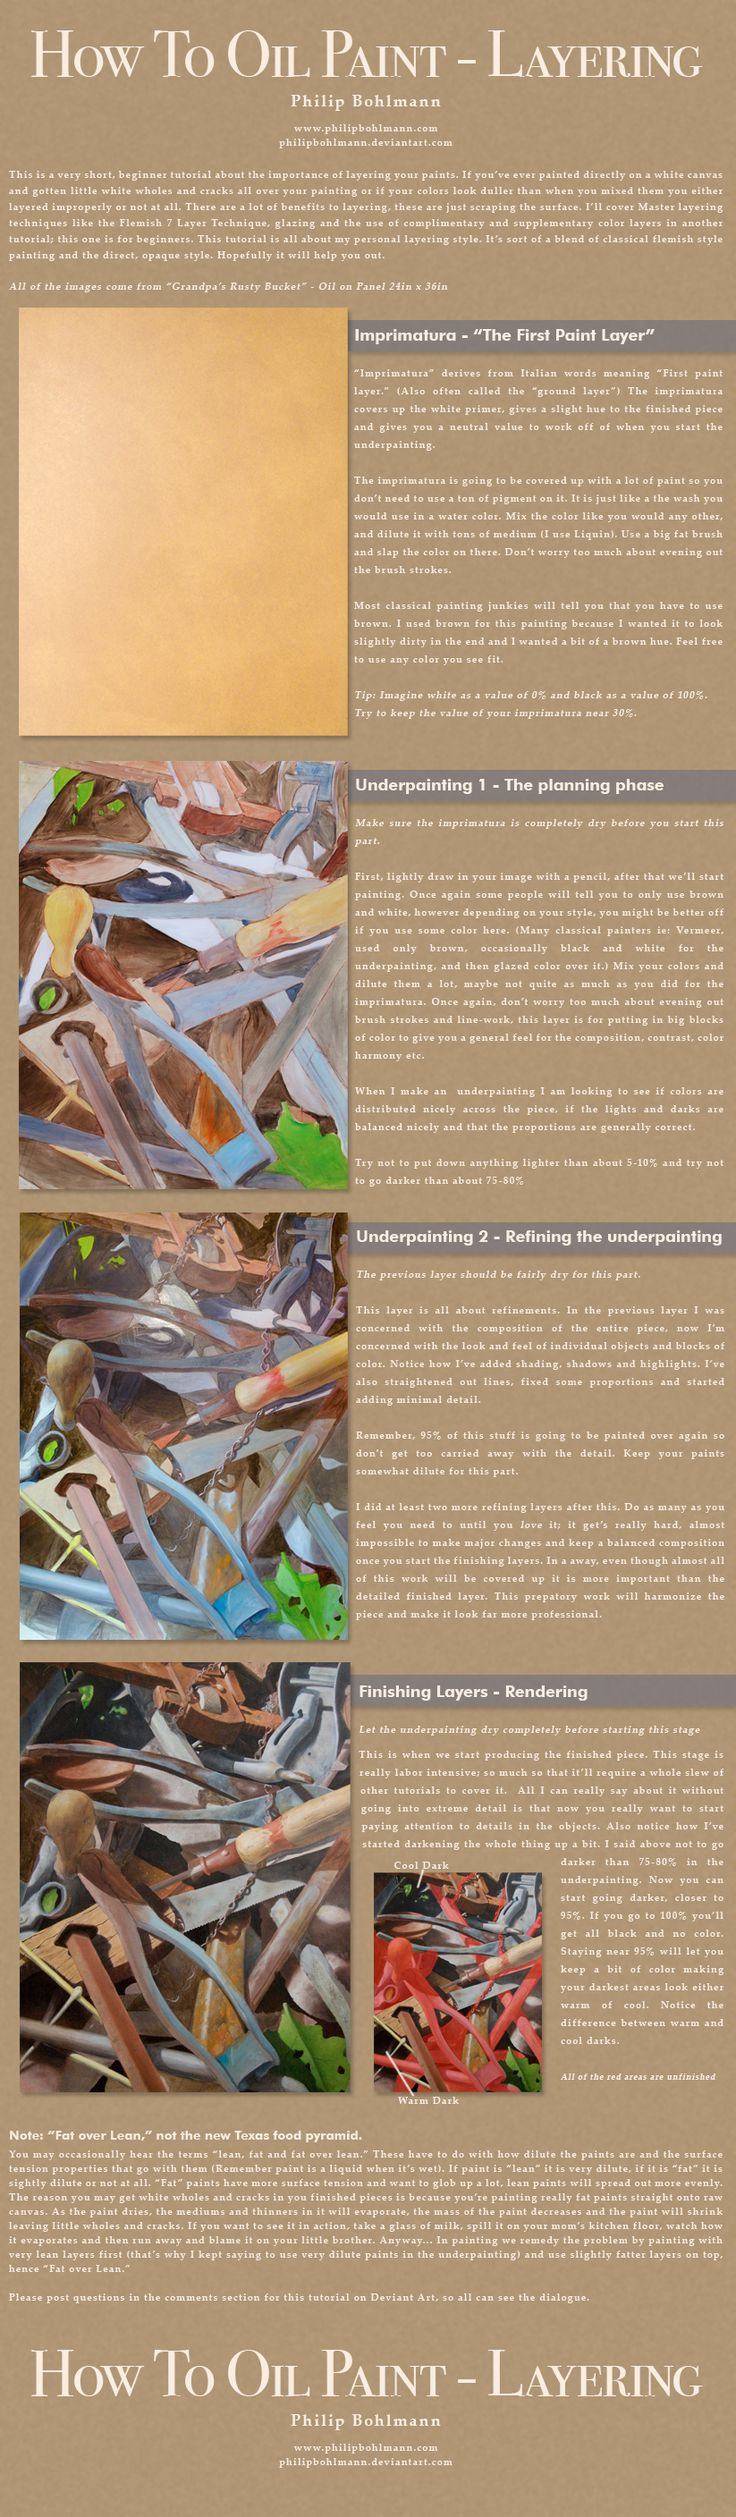 How to Oil Paint - Layering by PhilipBohlmann.deviantart.com on @deviantART